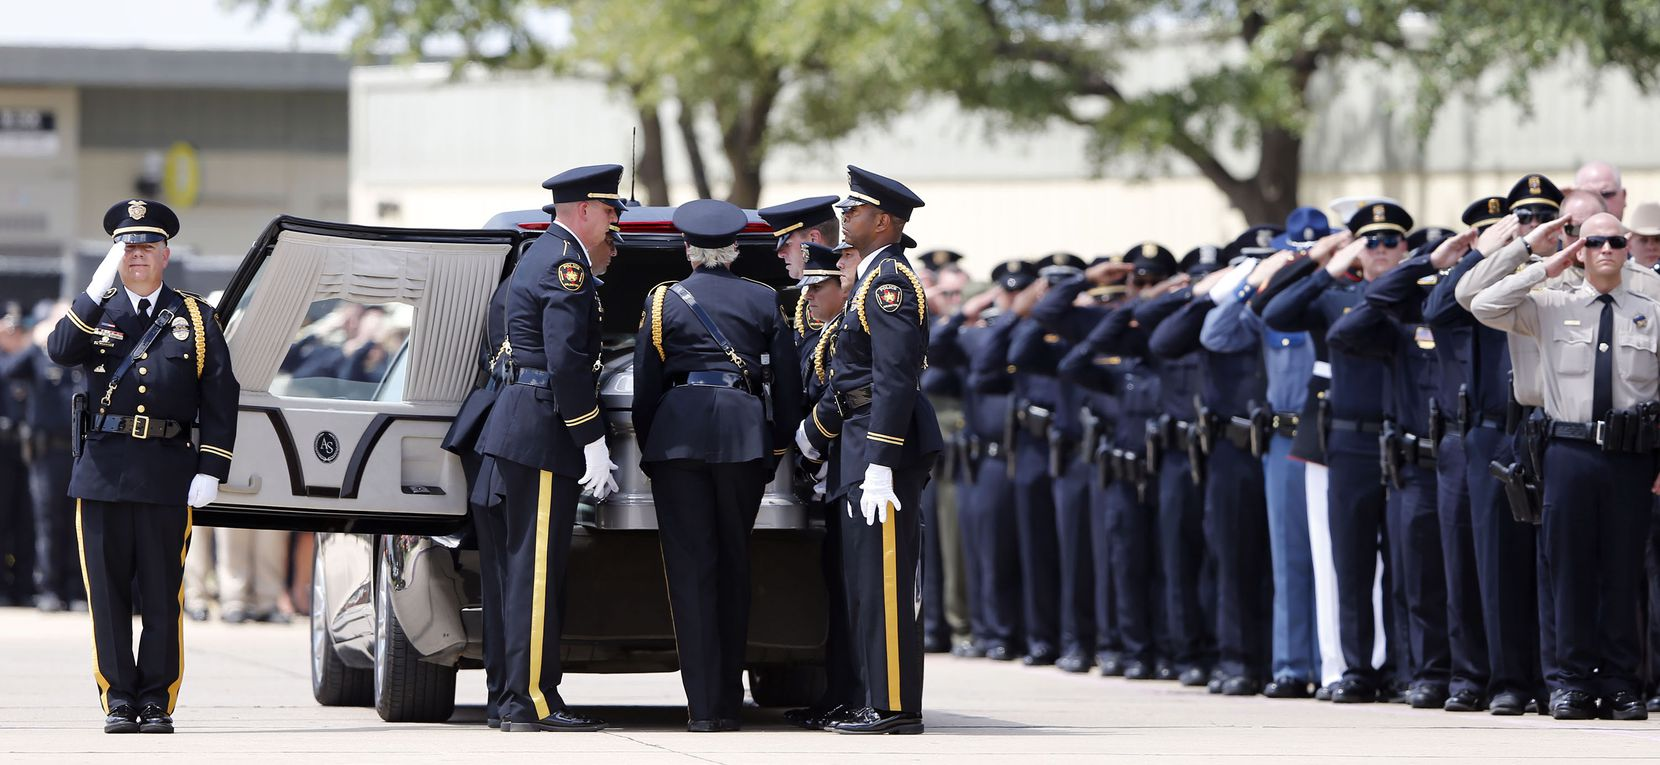 Arlington Honor Guard place DART Officer Brent Thompson inside the hearse during a memorial service at The Potter's House in Dallas on Wednesday, July 13, 2016. Thompson was one of five officers killed last week when a gunman opened fire during a Black Lives Matter rally in downtown Dallas.